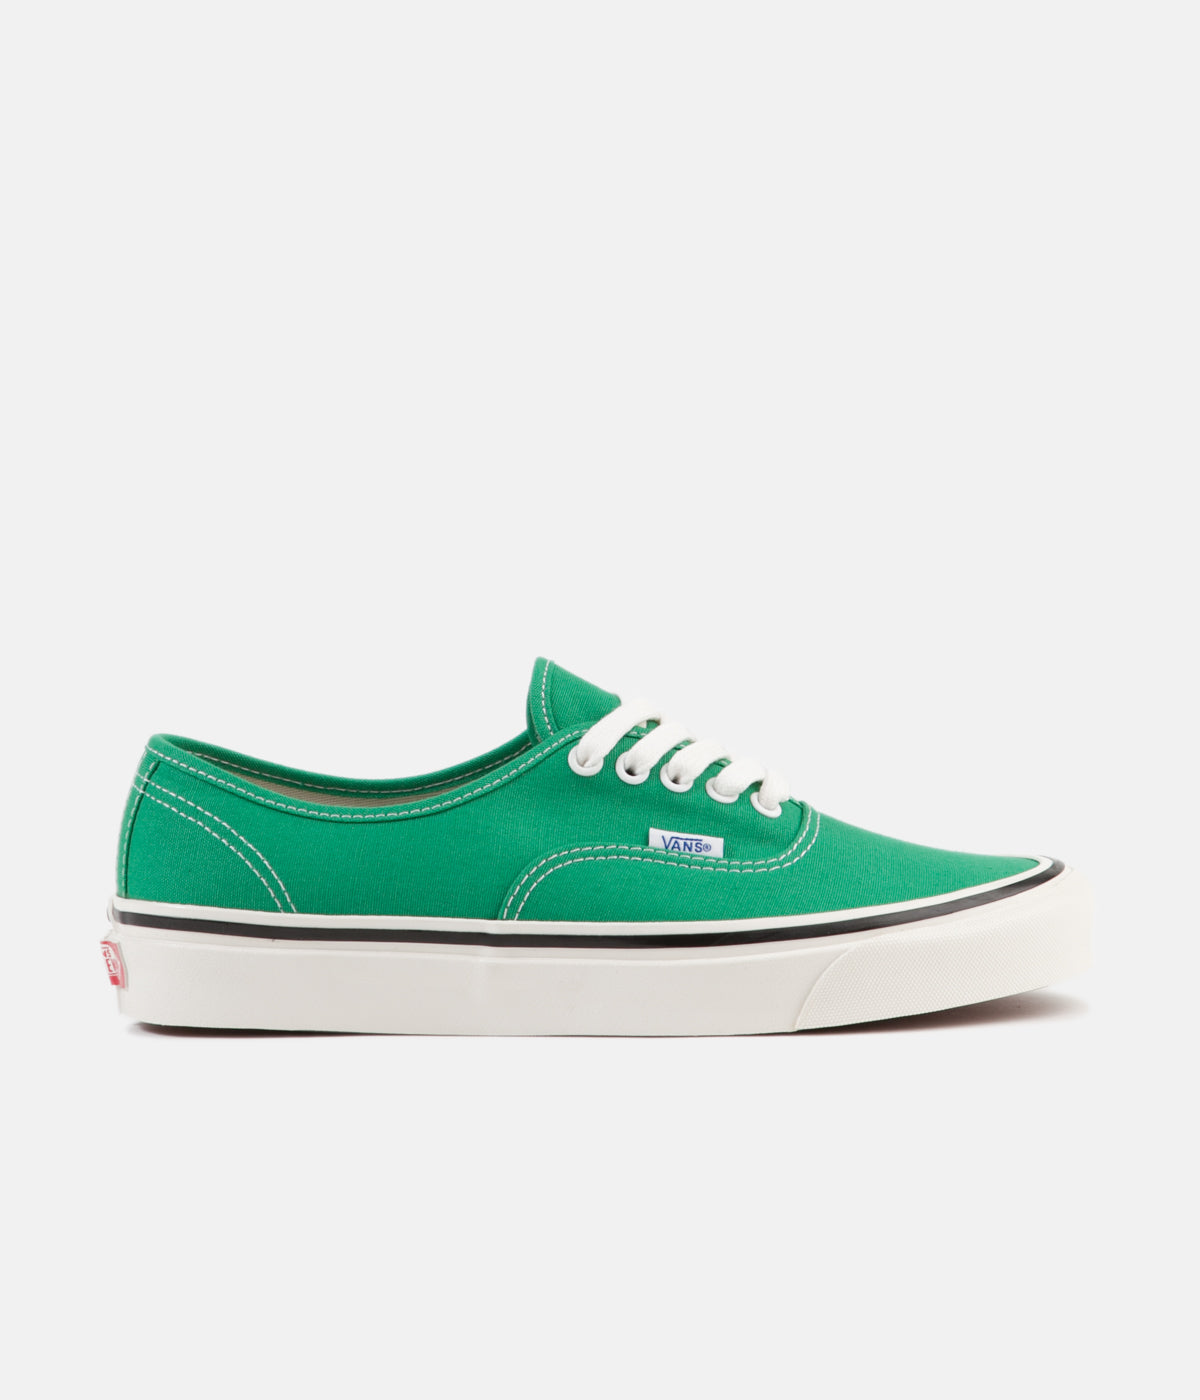 77fe8492 Vans Authentic 44 DX Anaheim Factory Shoes - OG Emerald Green | Flatspot